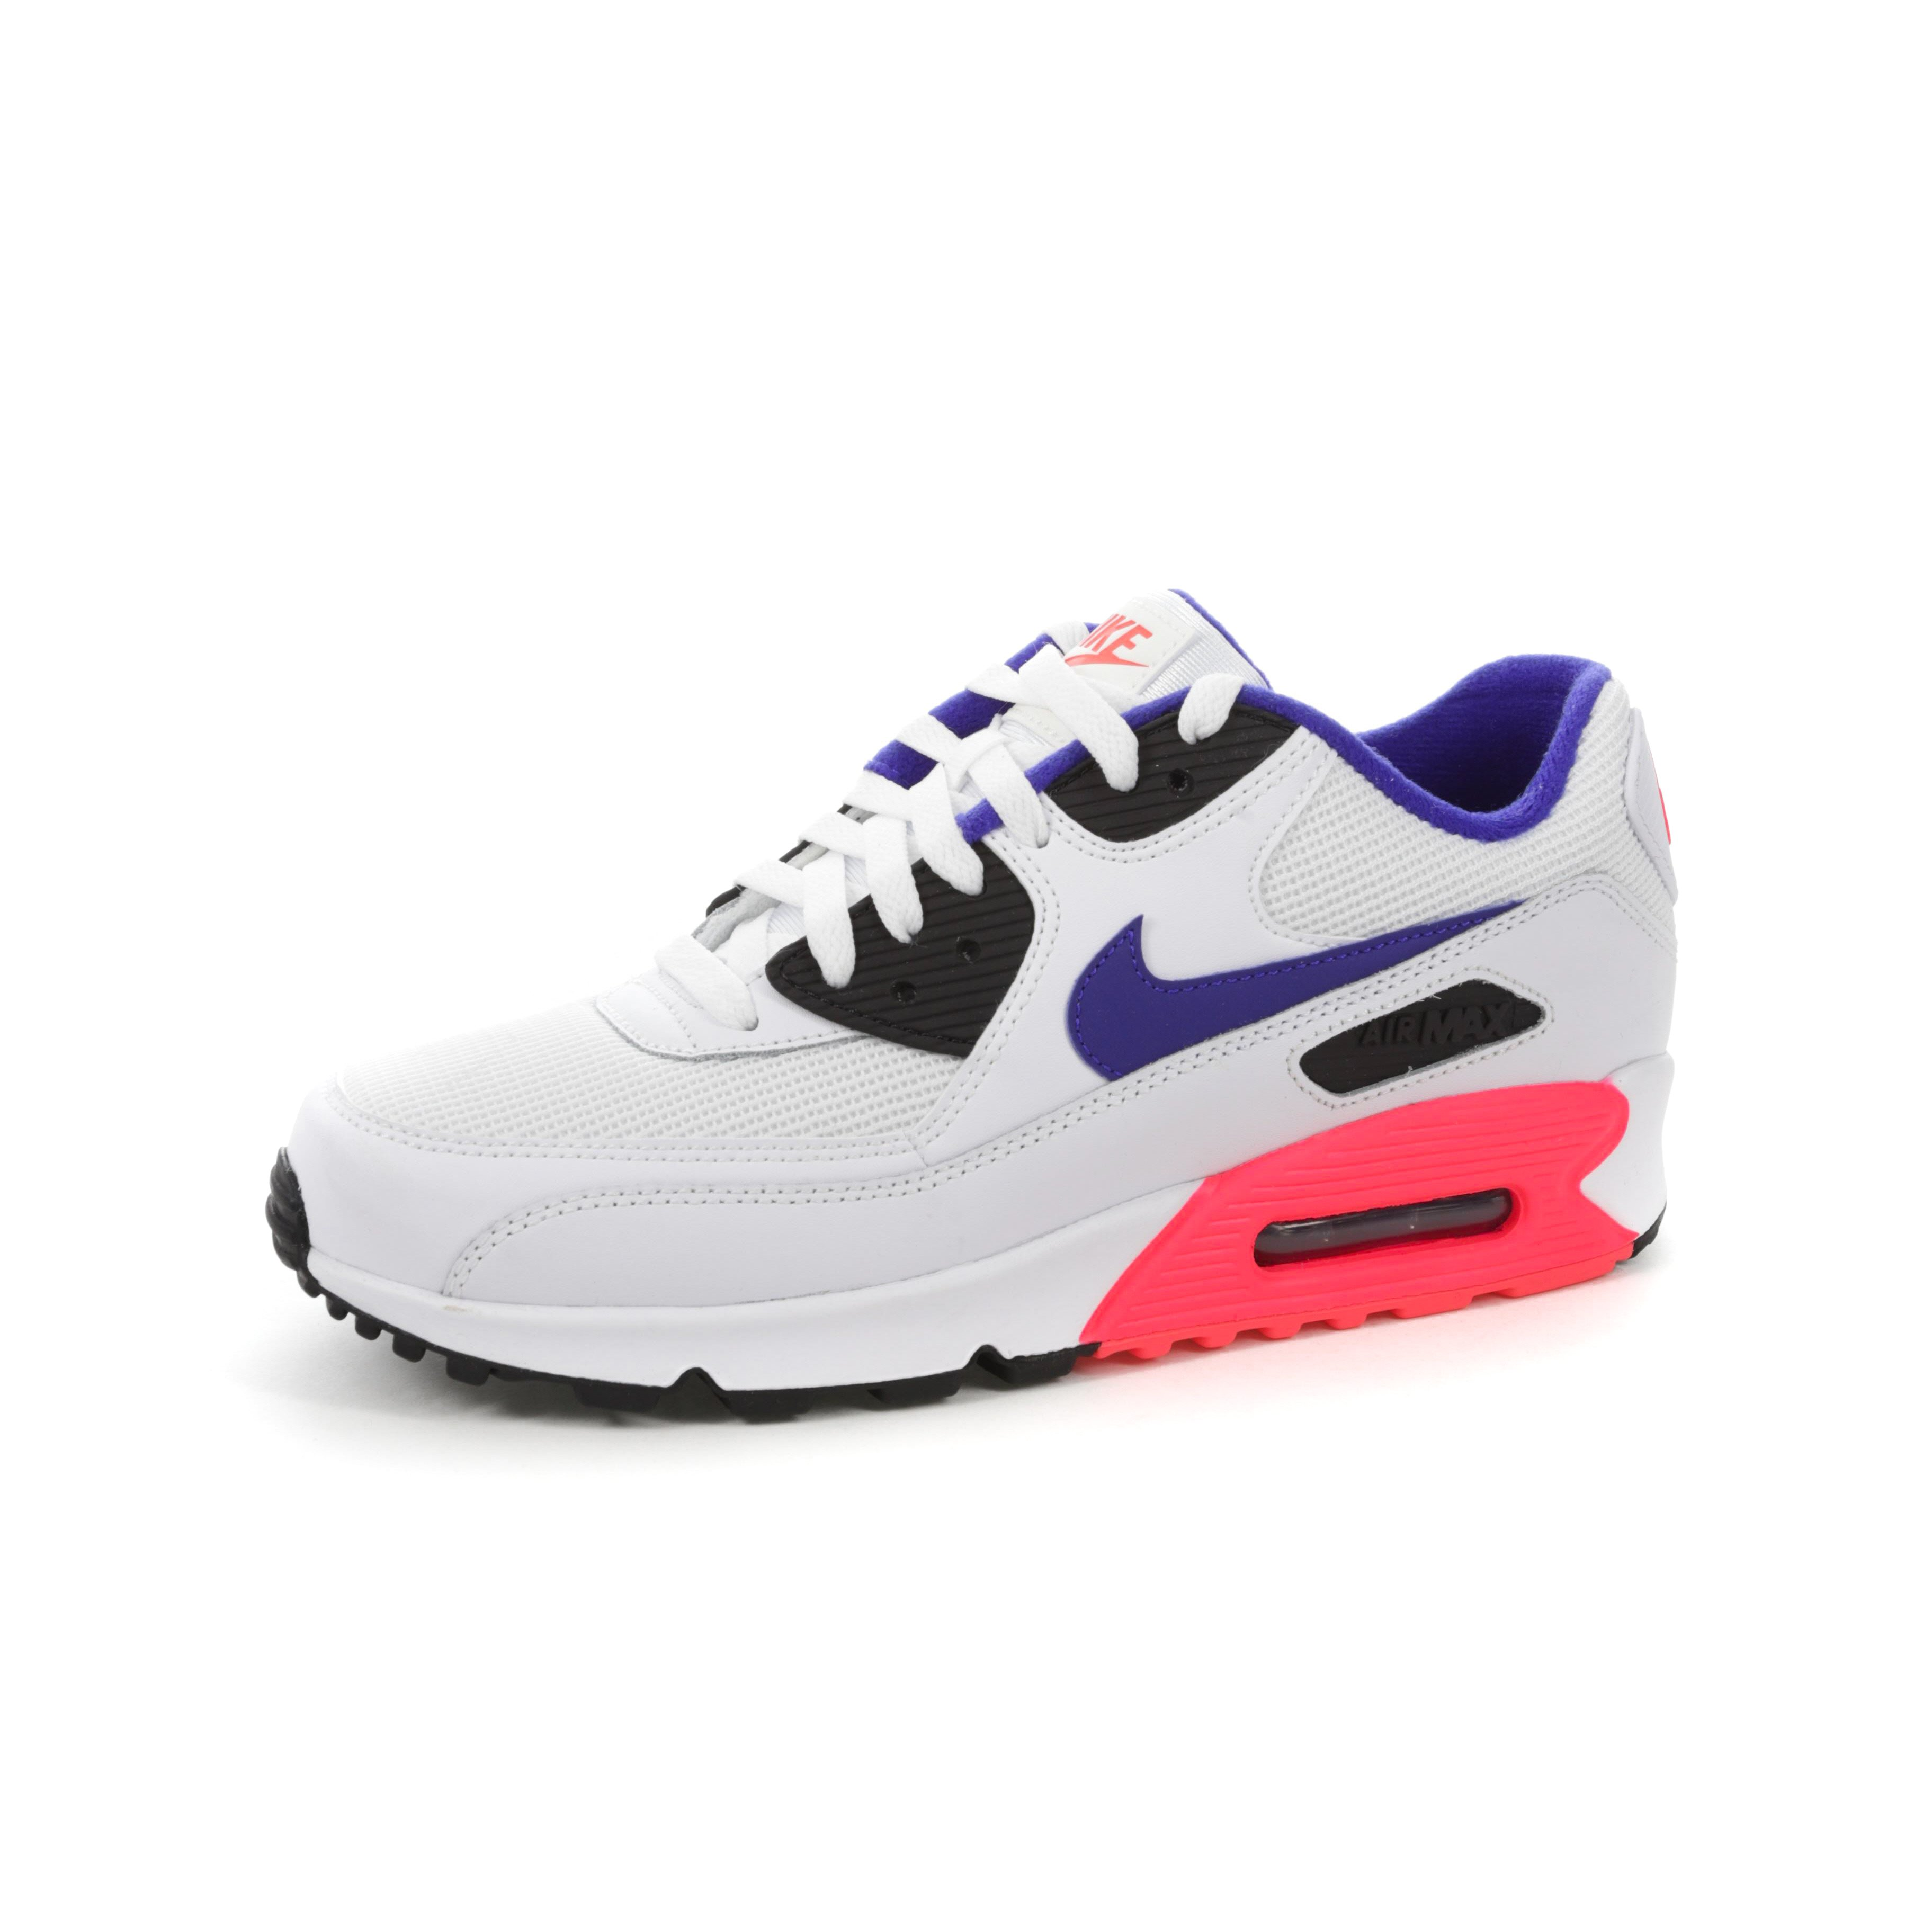 Consortium on Twitter: Nike Air Max 90